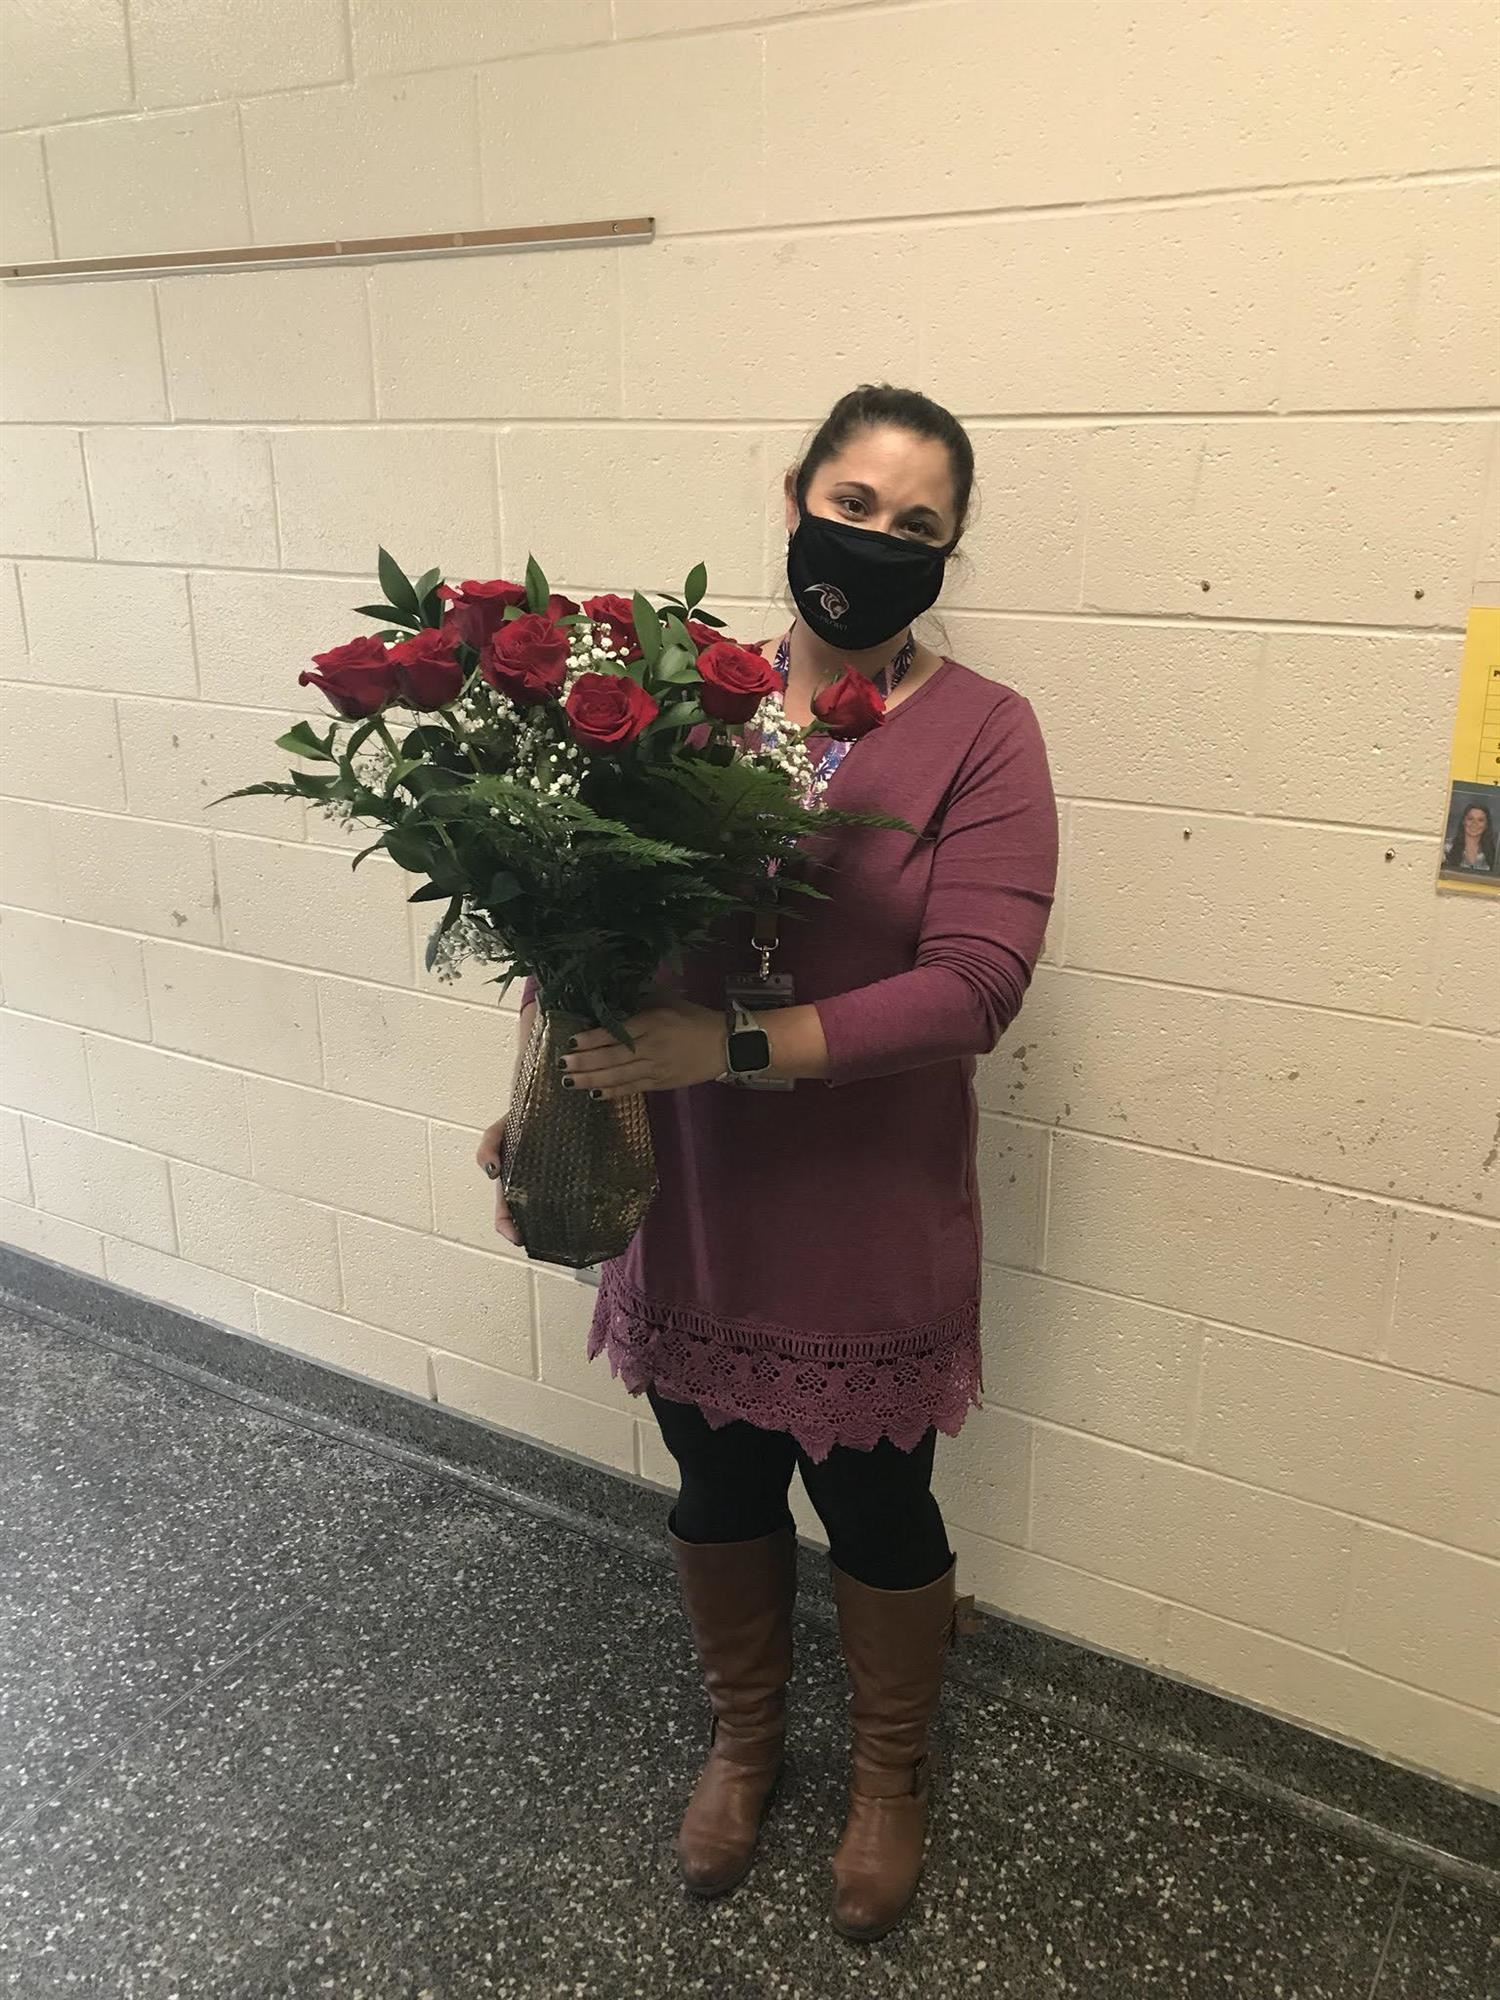 Pelion Middle School's 2020 Teacher of the Year